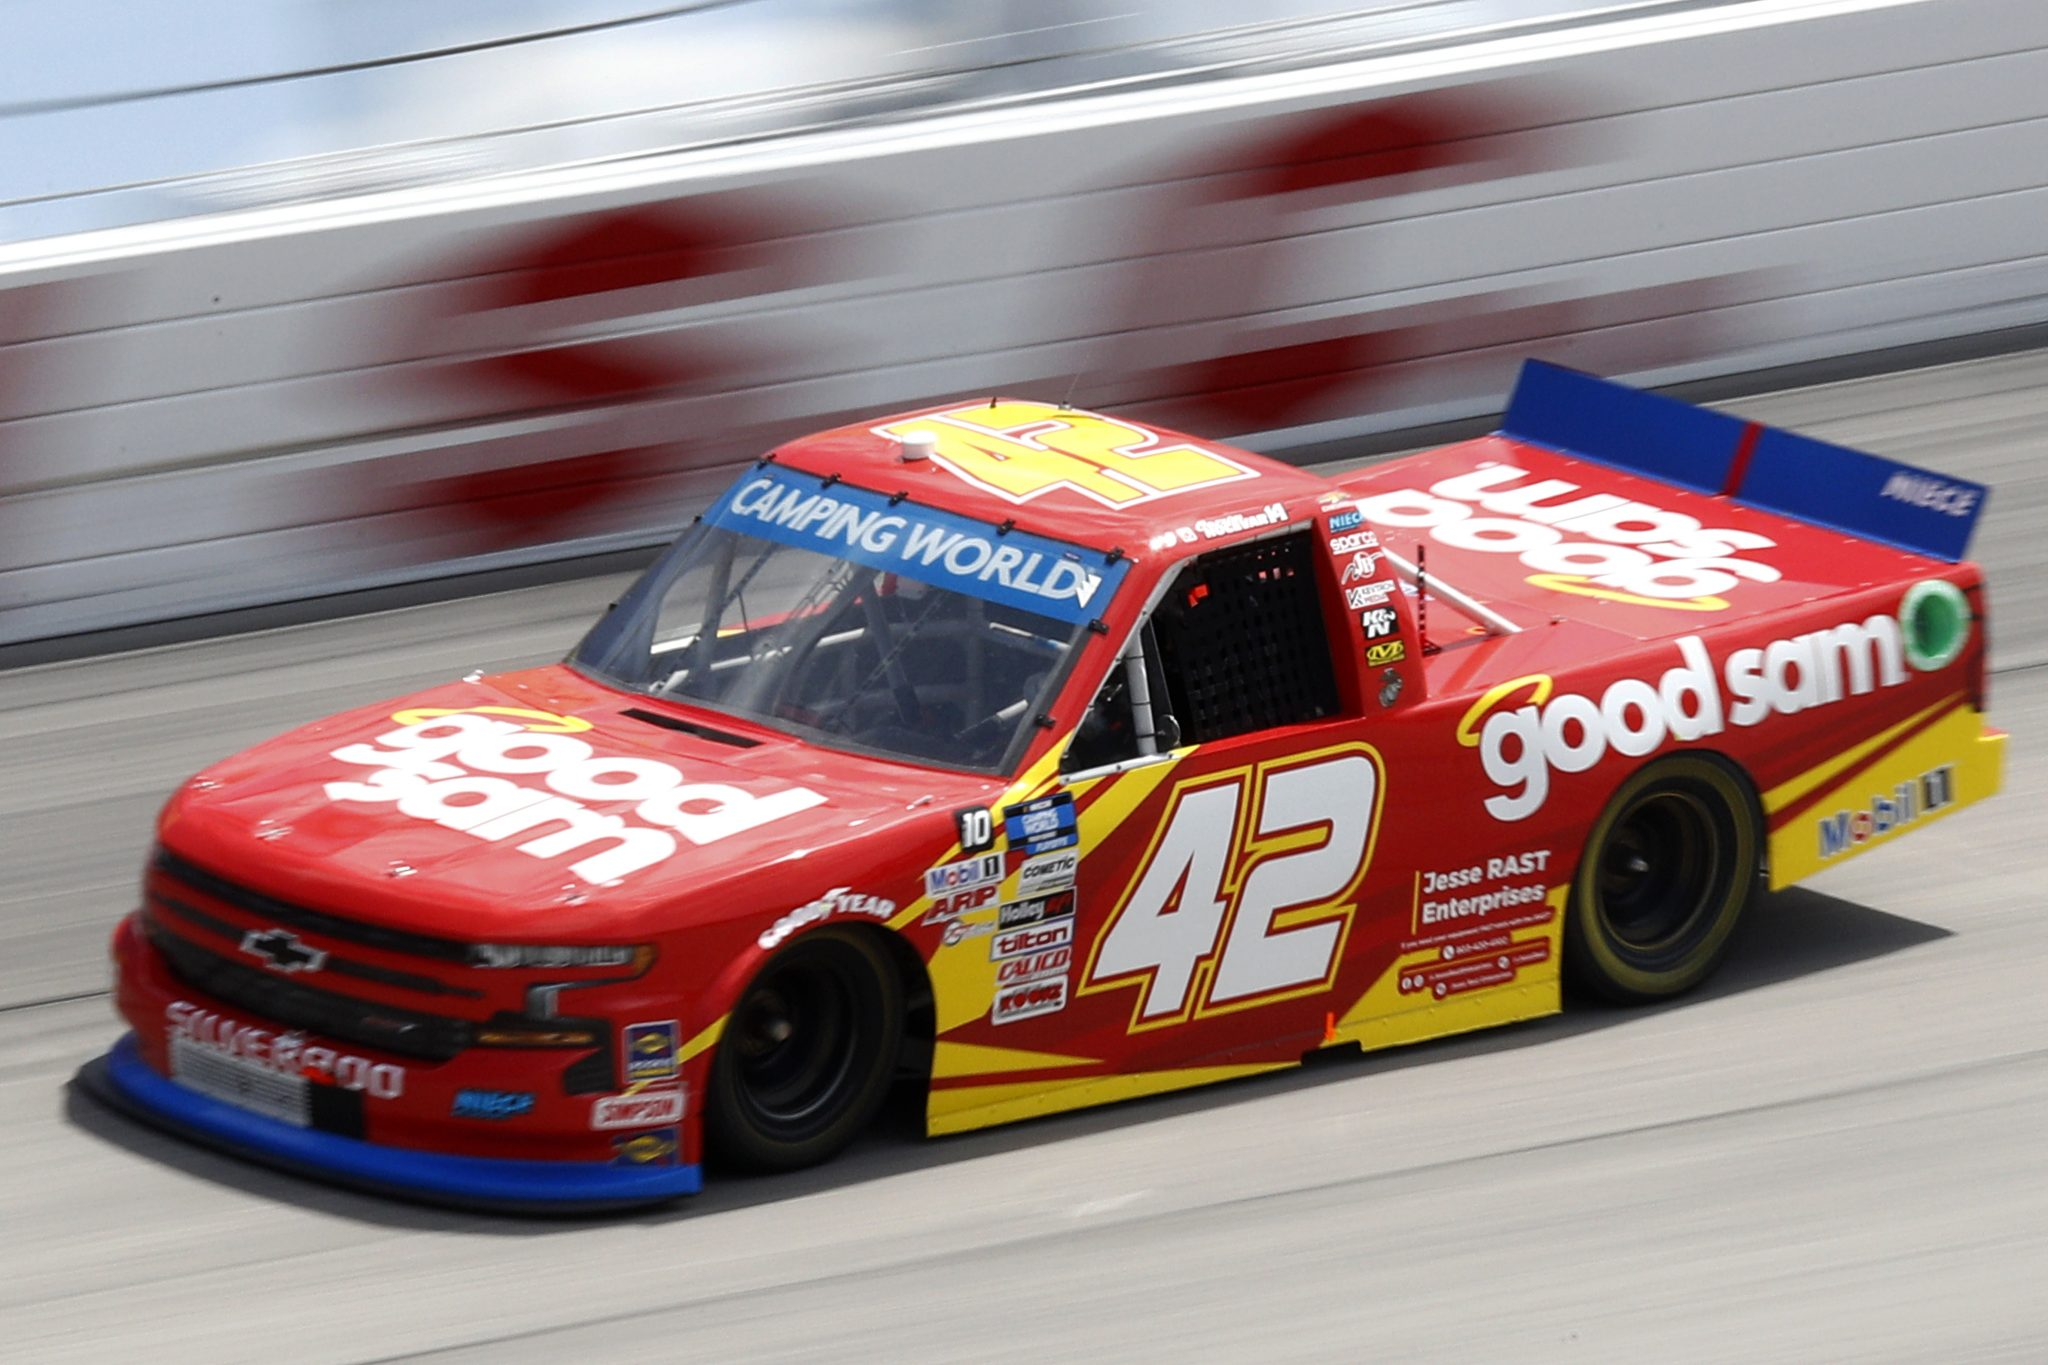 DARLINGTON, SOUTH CAROLINA - SEPTEMBER 05: Carson Hocevar, driver of the #42 Good Sam Chevrolet, drives during the NASCAR Camping World Truck Series In It To Win It 200 at Darlington Raceway on September 05, 2021 in Darlington, South Carolina. (Photo by Jared East/Getty Images)   Getty Images